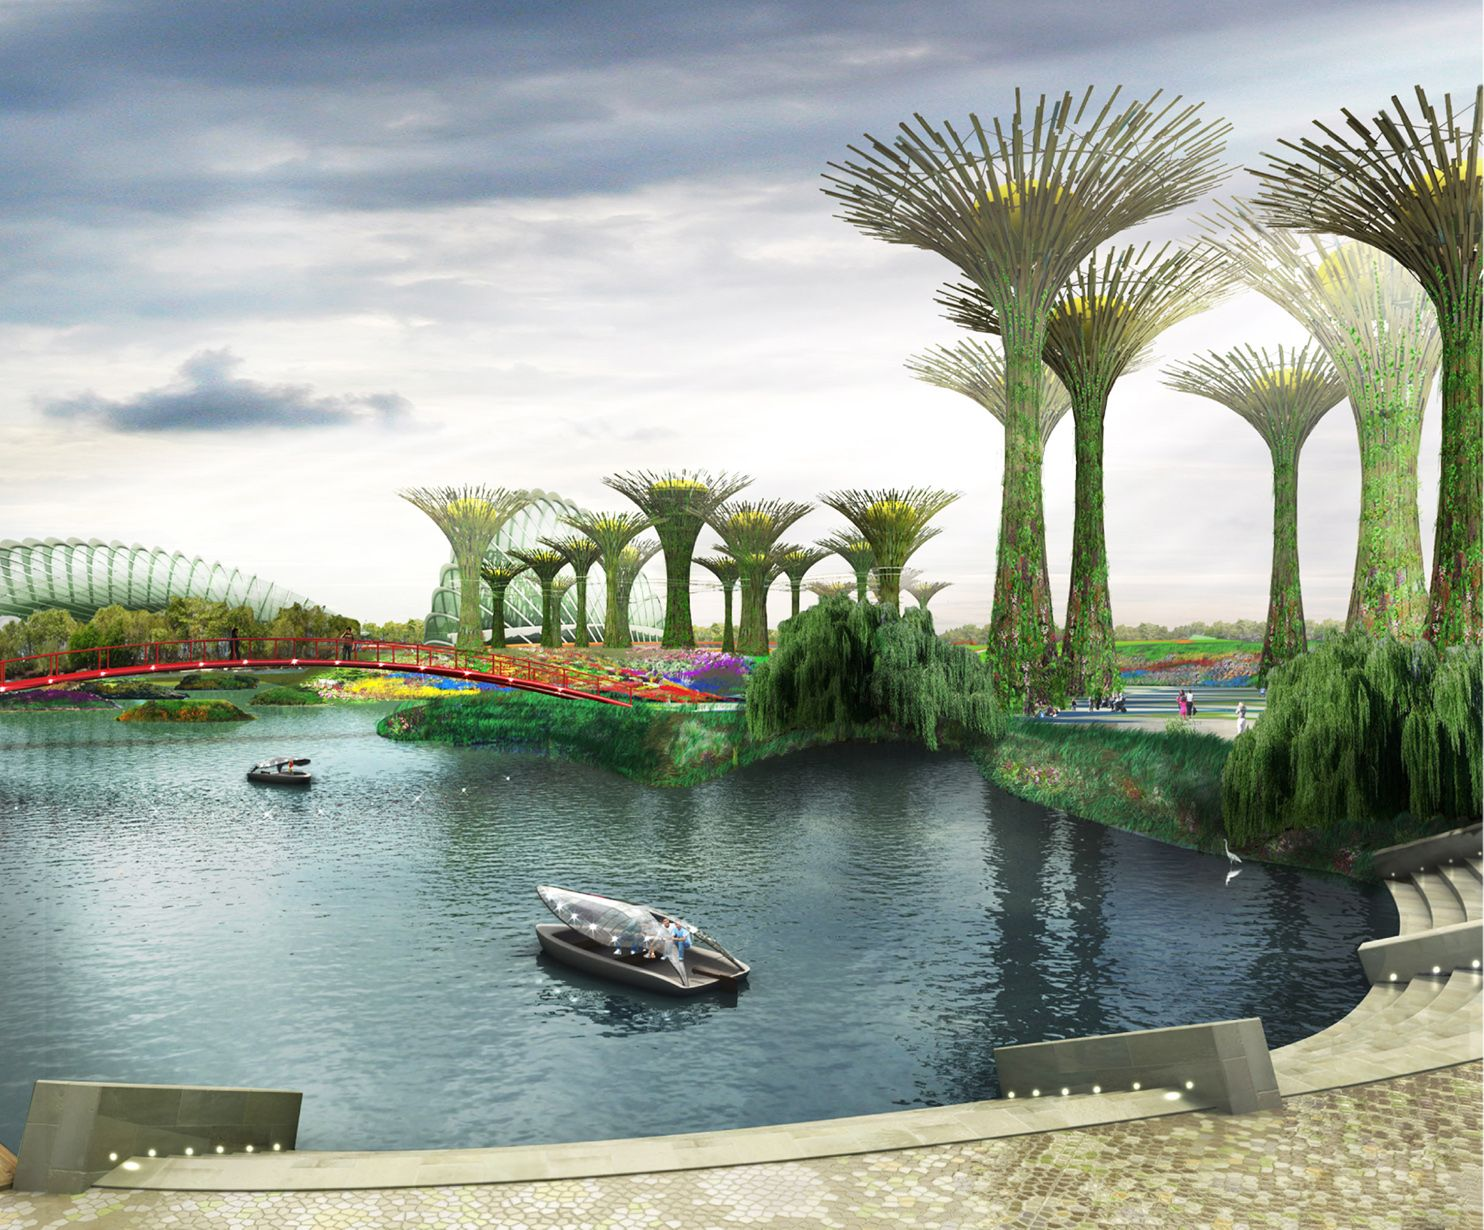 f5f9e44ca671a2c62dd41c300a2ea1f3 - Gardens By The Bay If Raining